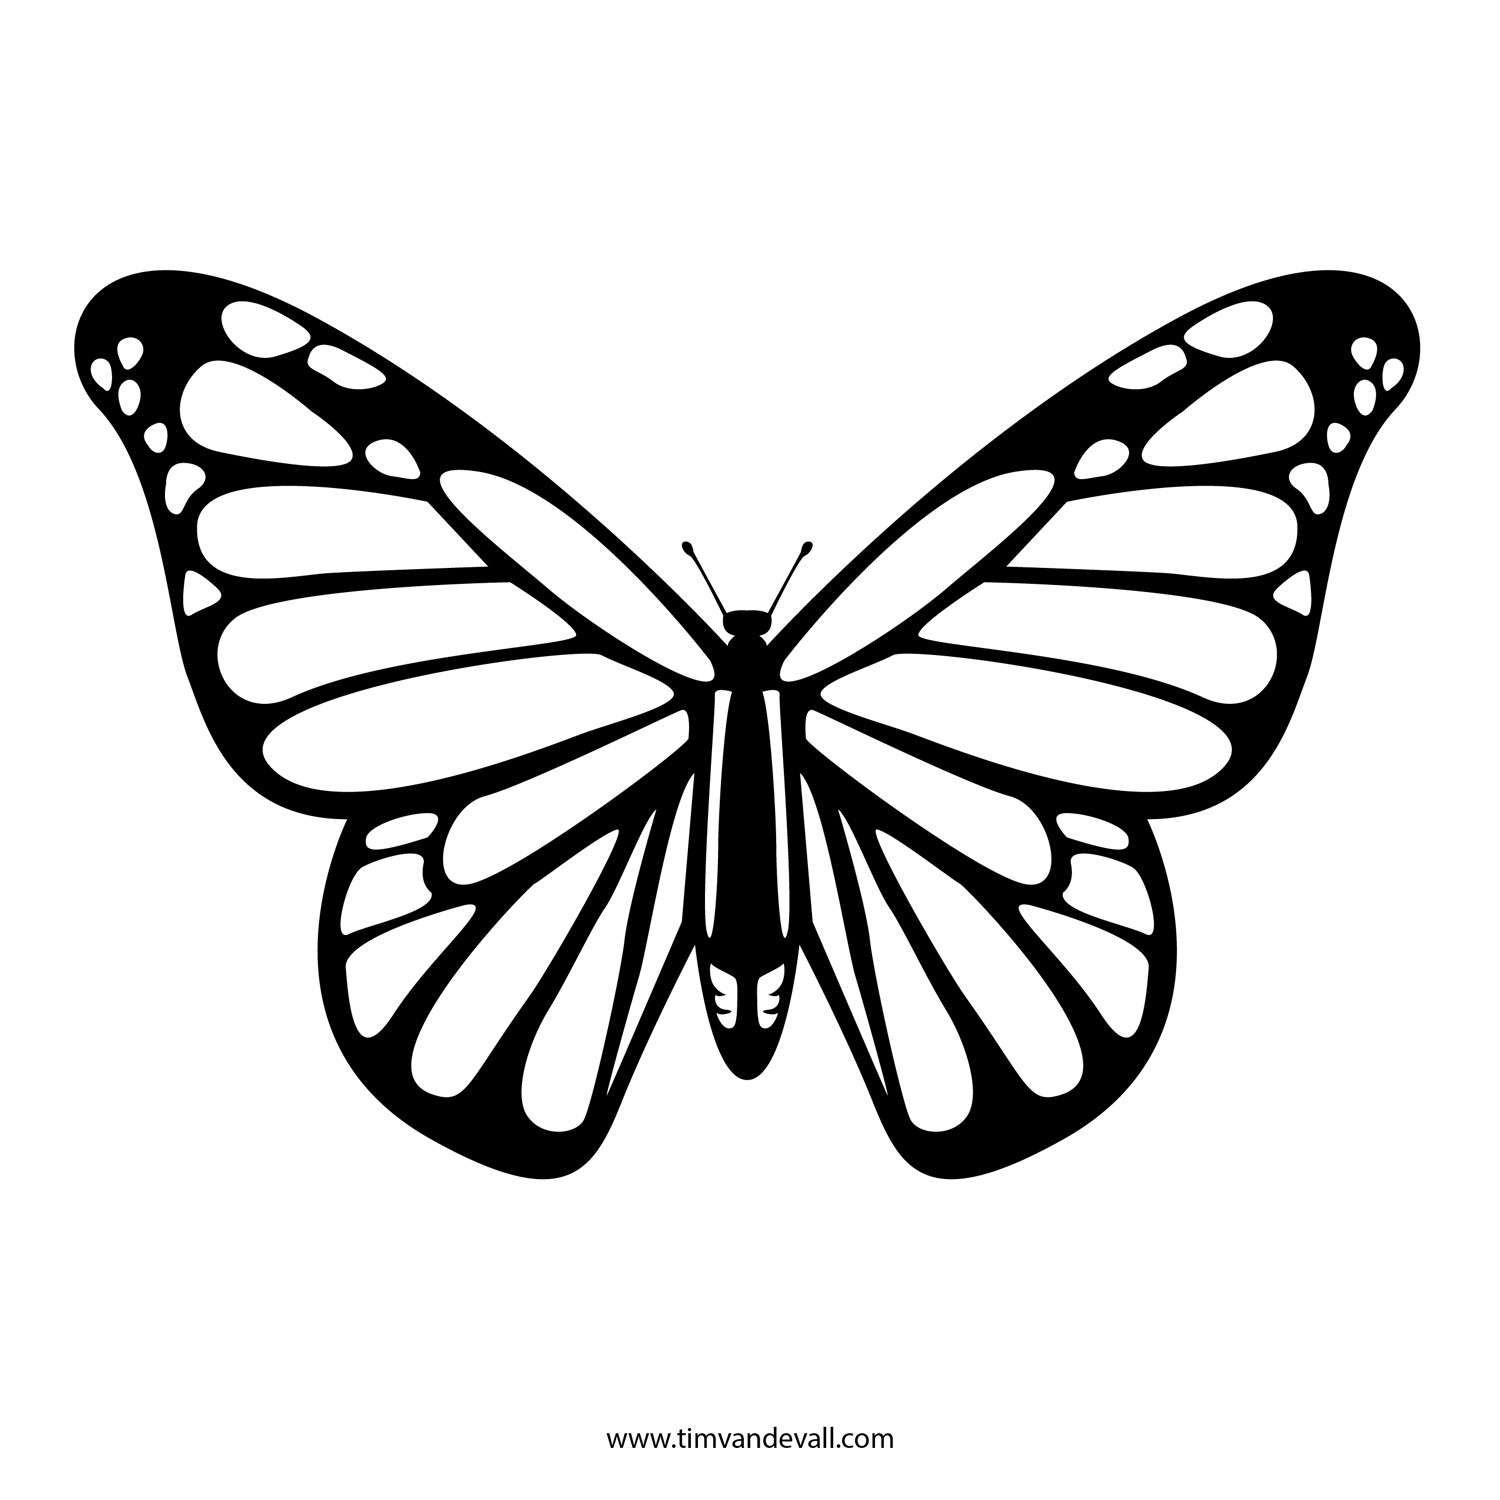 Free Butterfly Stencil | Monarch Butterfly Outline And Silhouette intended for Monarch Butterfly Template 29350